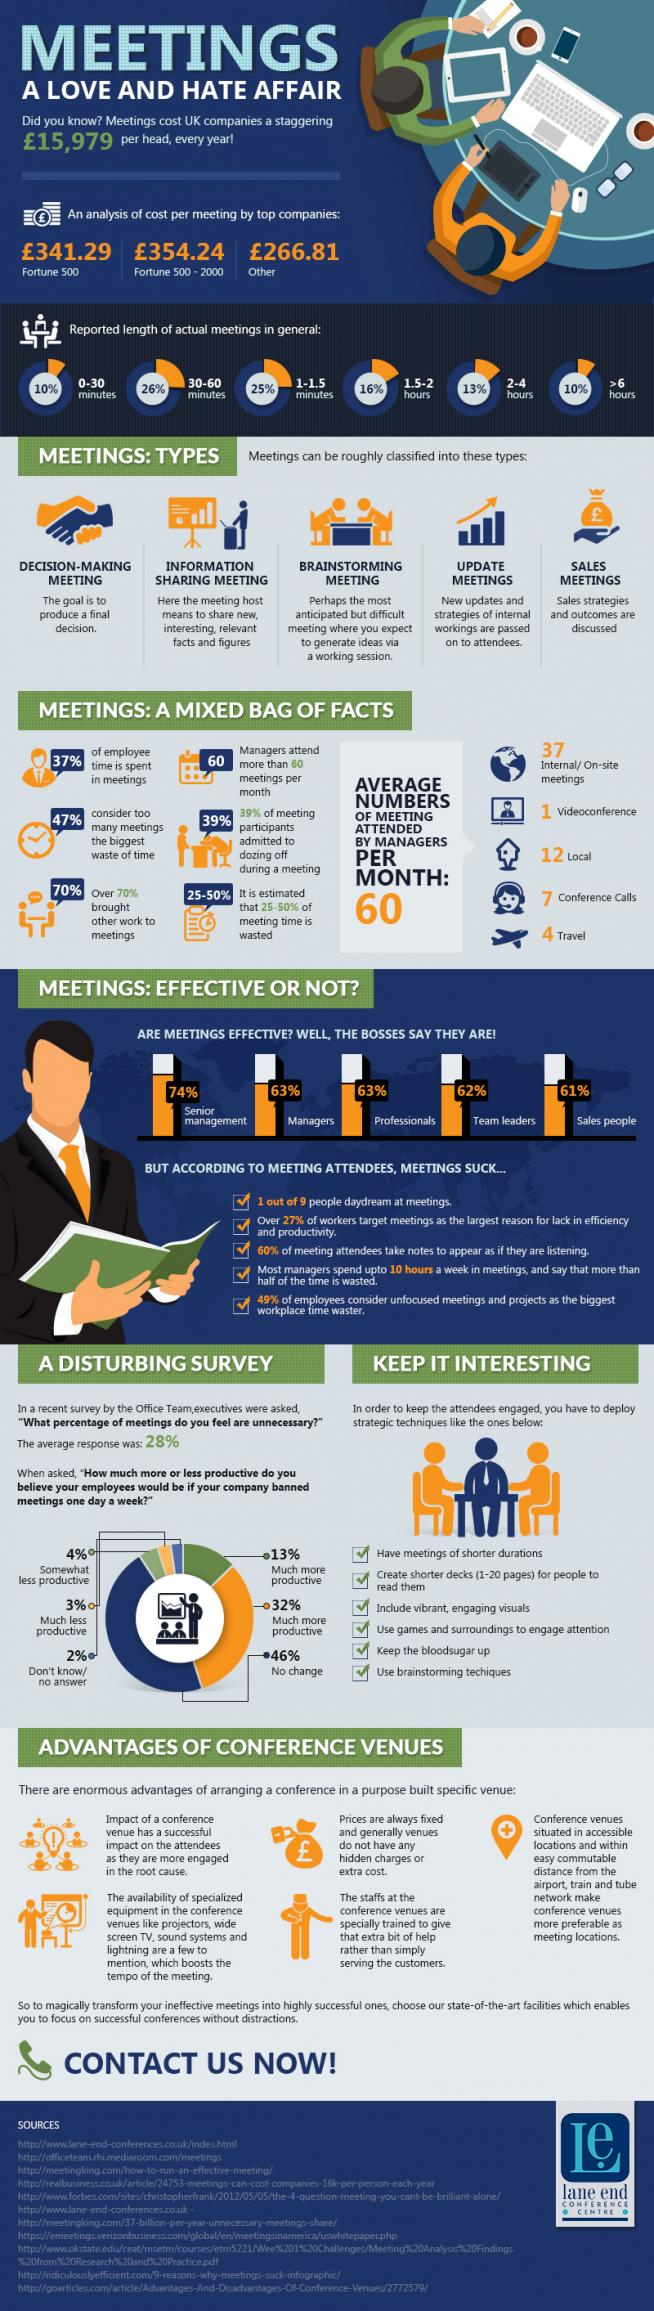 c2ag_654x2311_3_Meetings_Infographic